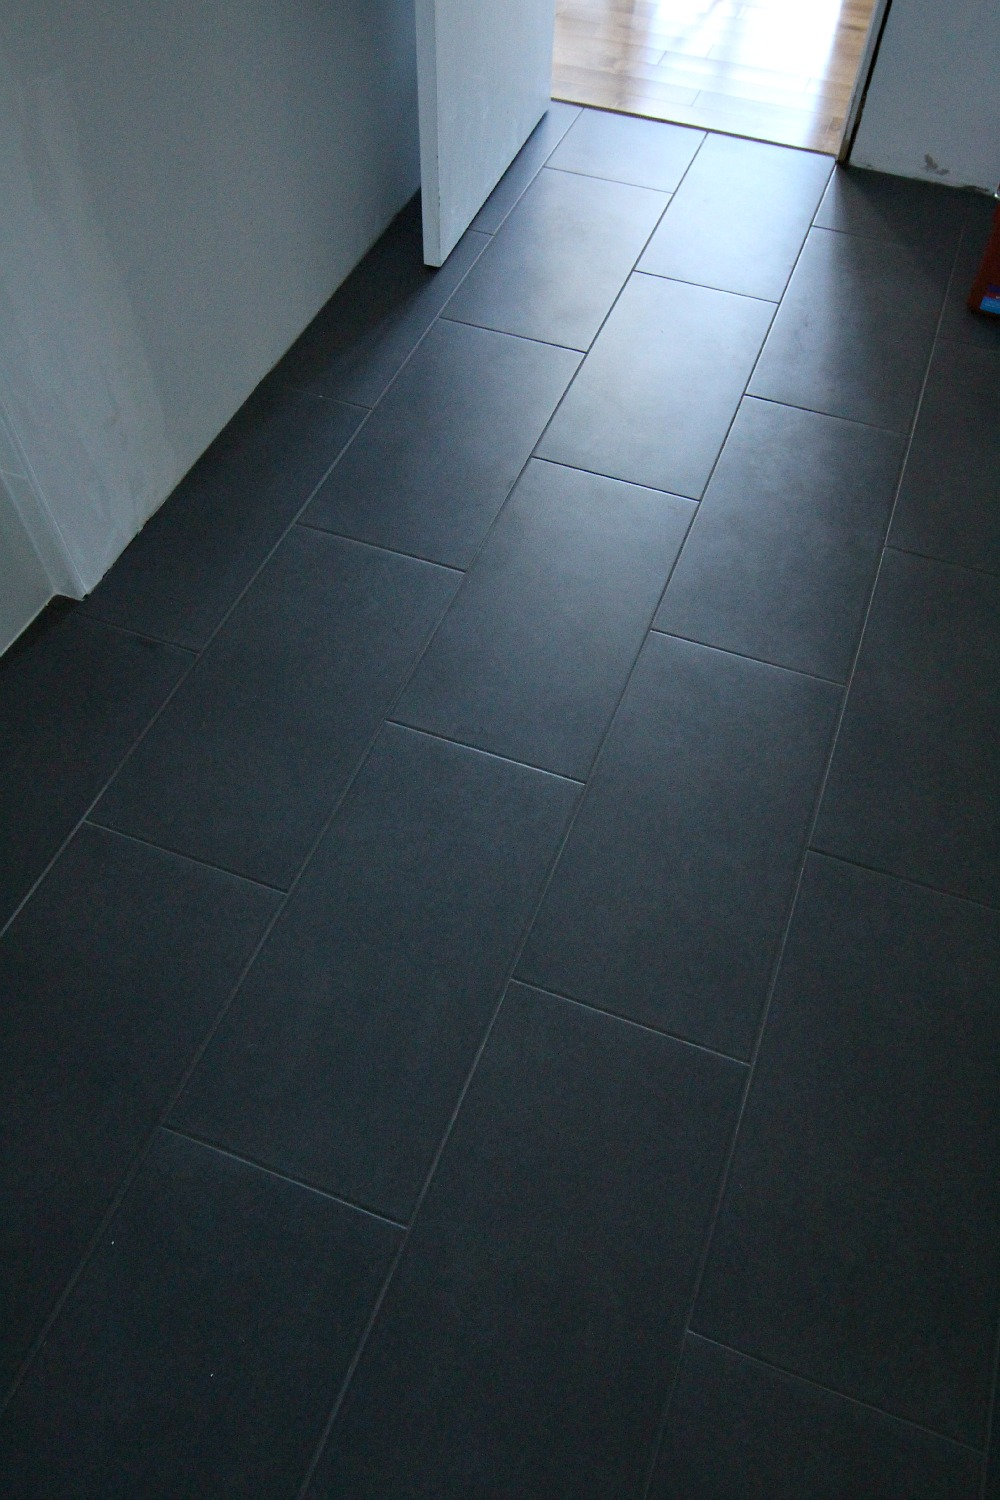 Large dar grey floor tile